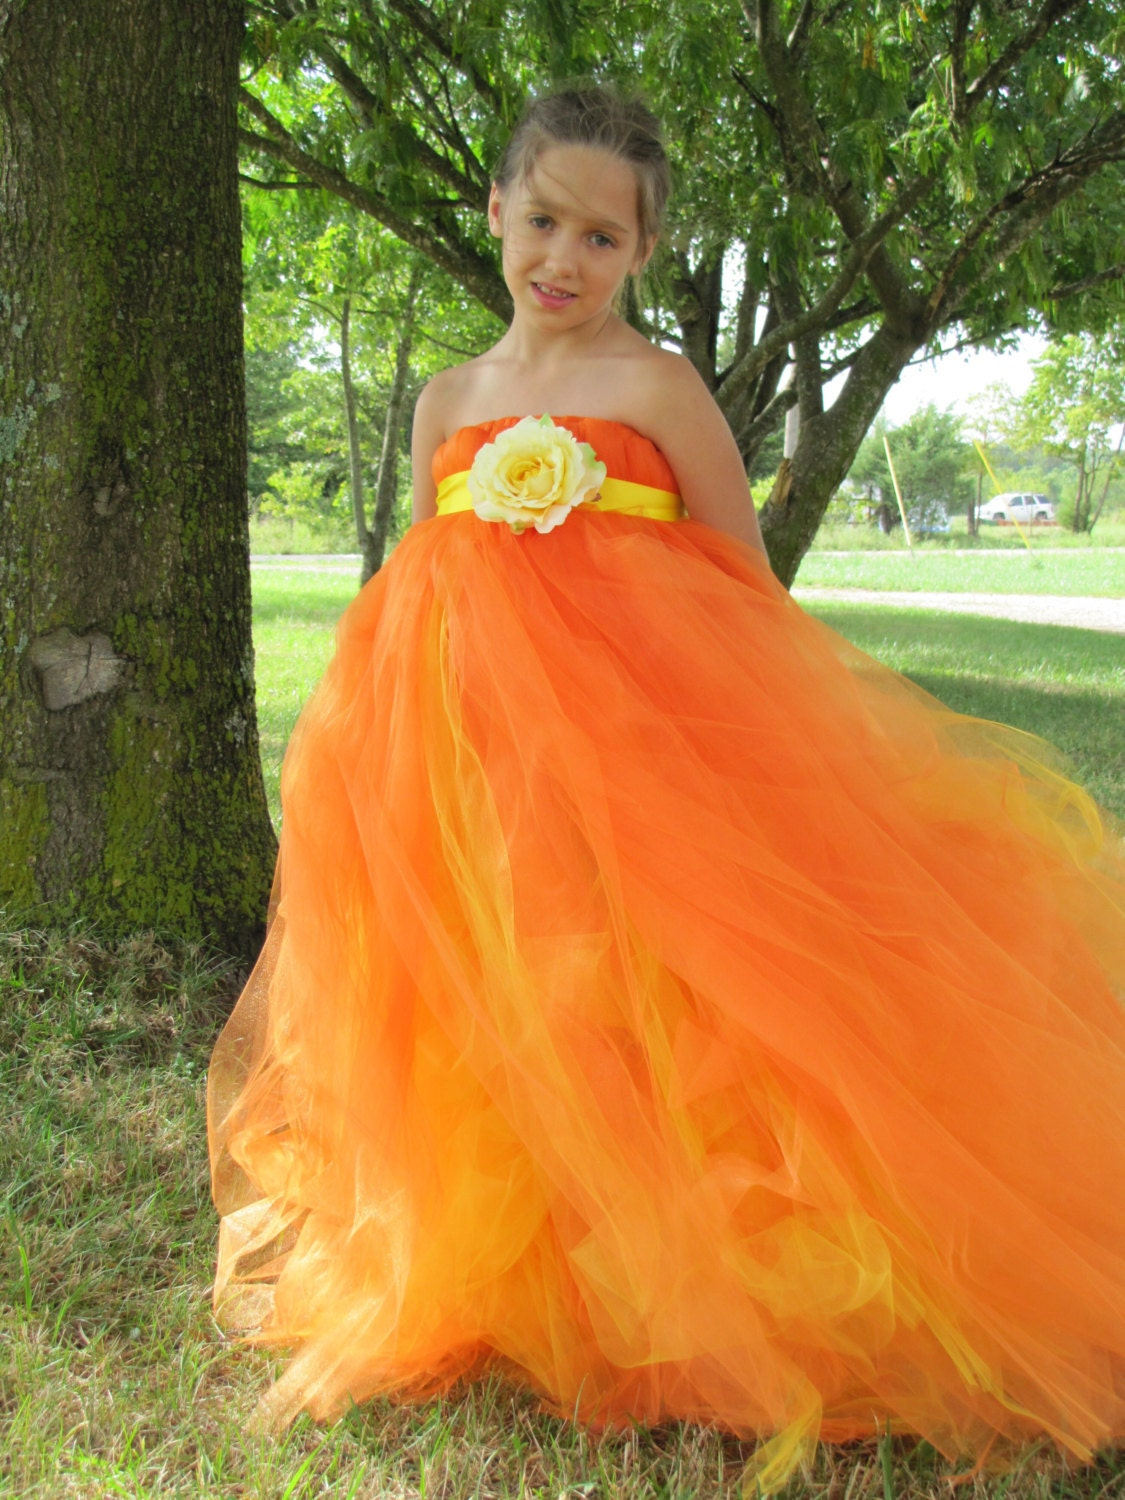 Flower girl dresses orange and yellow wedding dresses flower girl dresses orange and yellow 44 izmirmasajfo